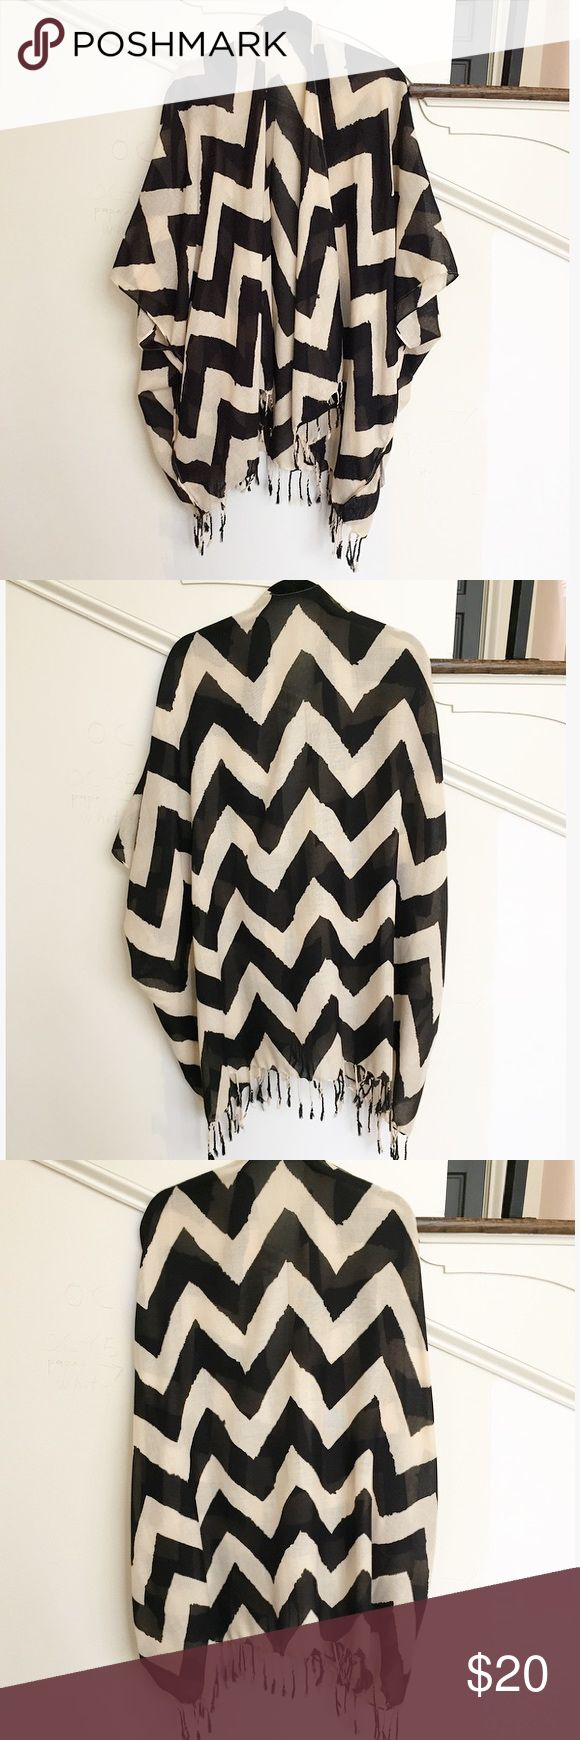 Bcbgeneration Chevron Print Kimono Poncho Jacket BcBGeneration Chevron Poncho. Black and white/cream. Features tassels on the bottom hem. The BcBggenration tag has come off. It was loosely tagged on since you could technically wear it inside or as well. BCBGeneration Jackets & Coats